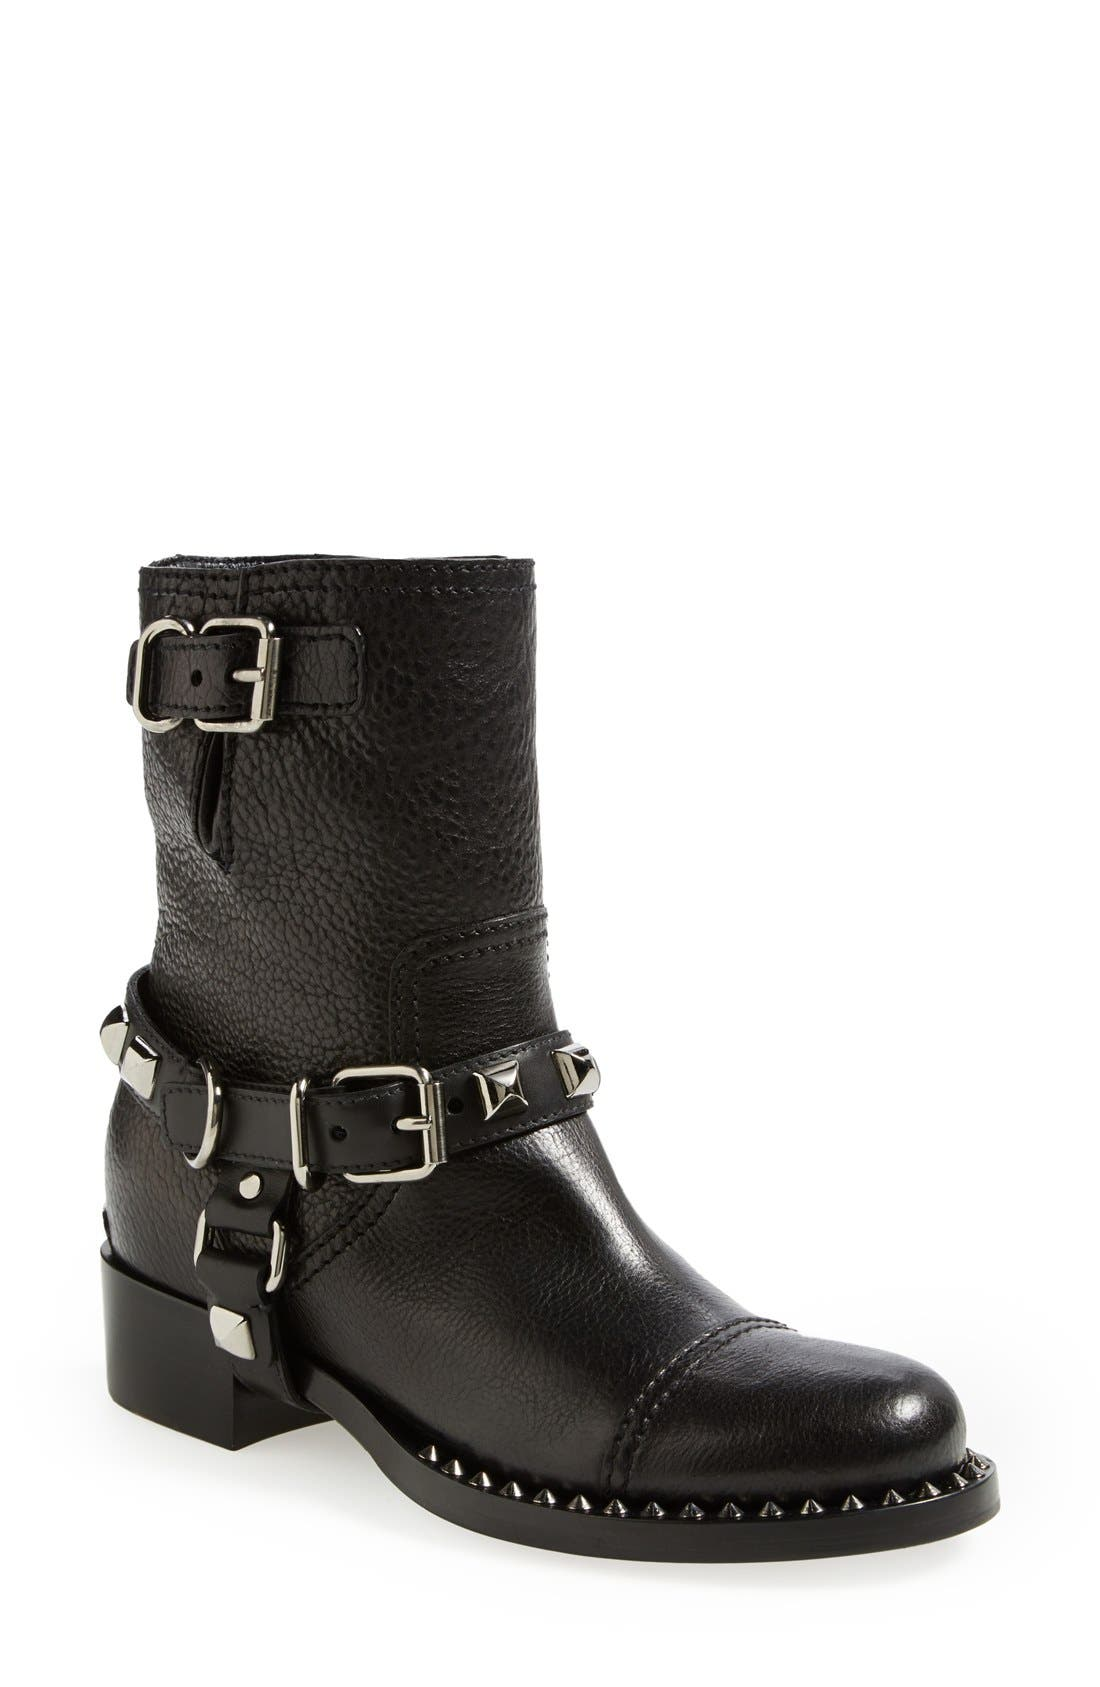 Alternate Image 1 Selected - Miu Miu Studded Harness Moto Boot (Women)